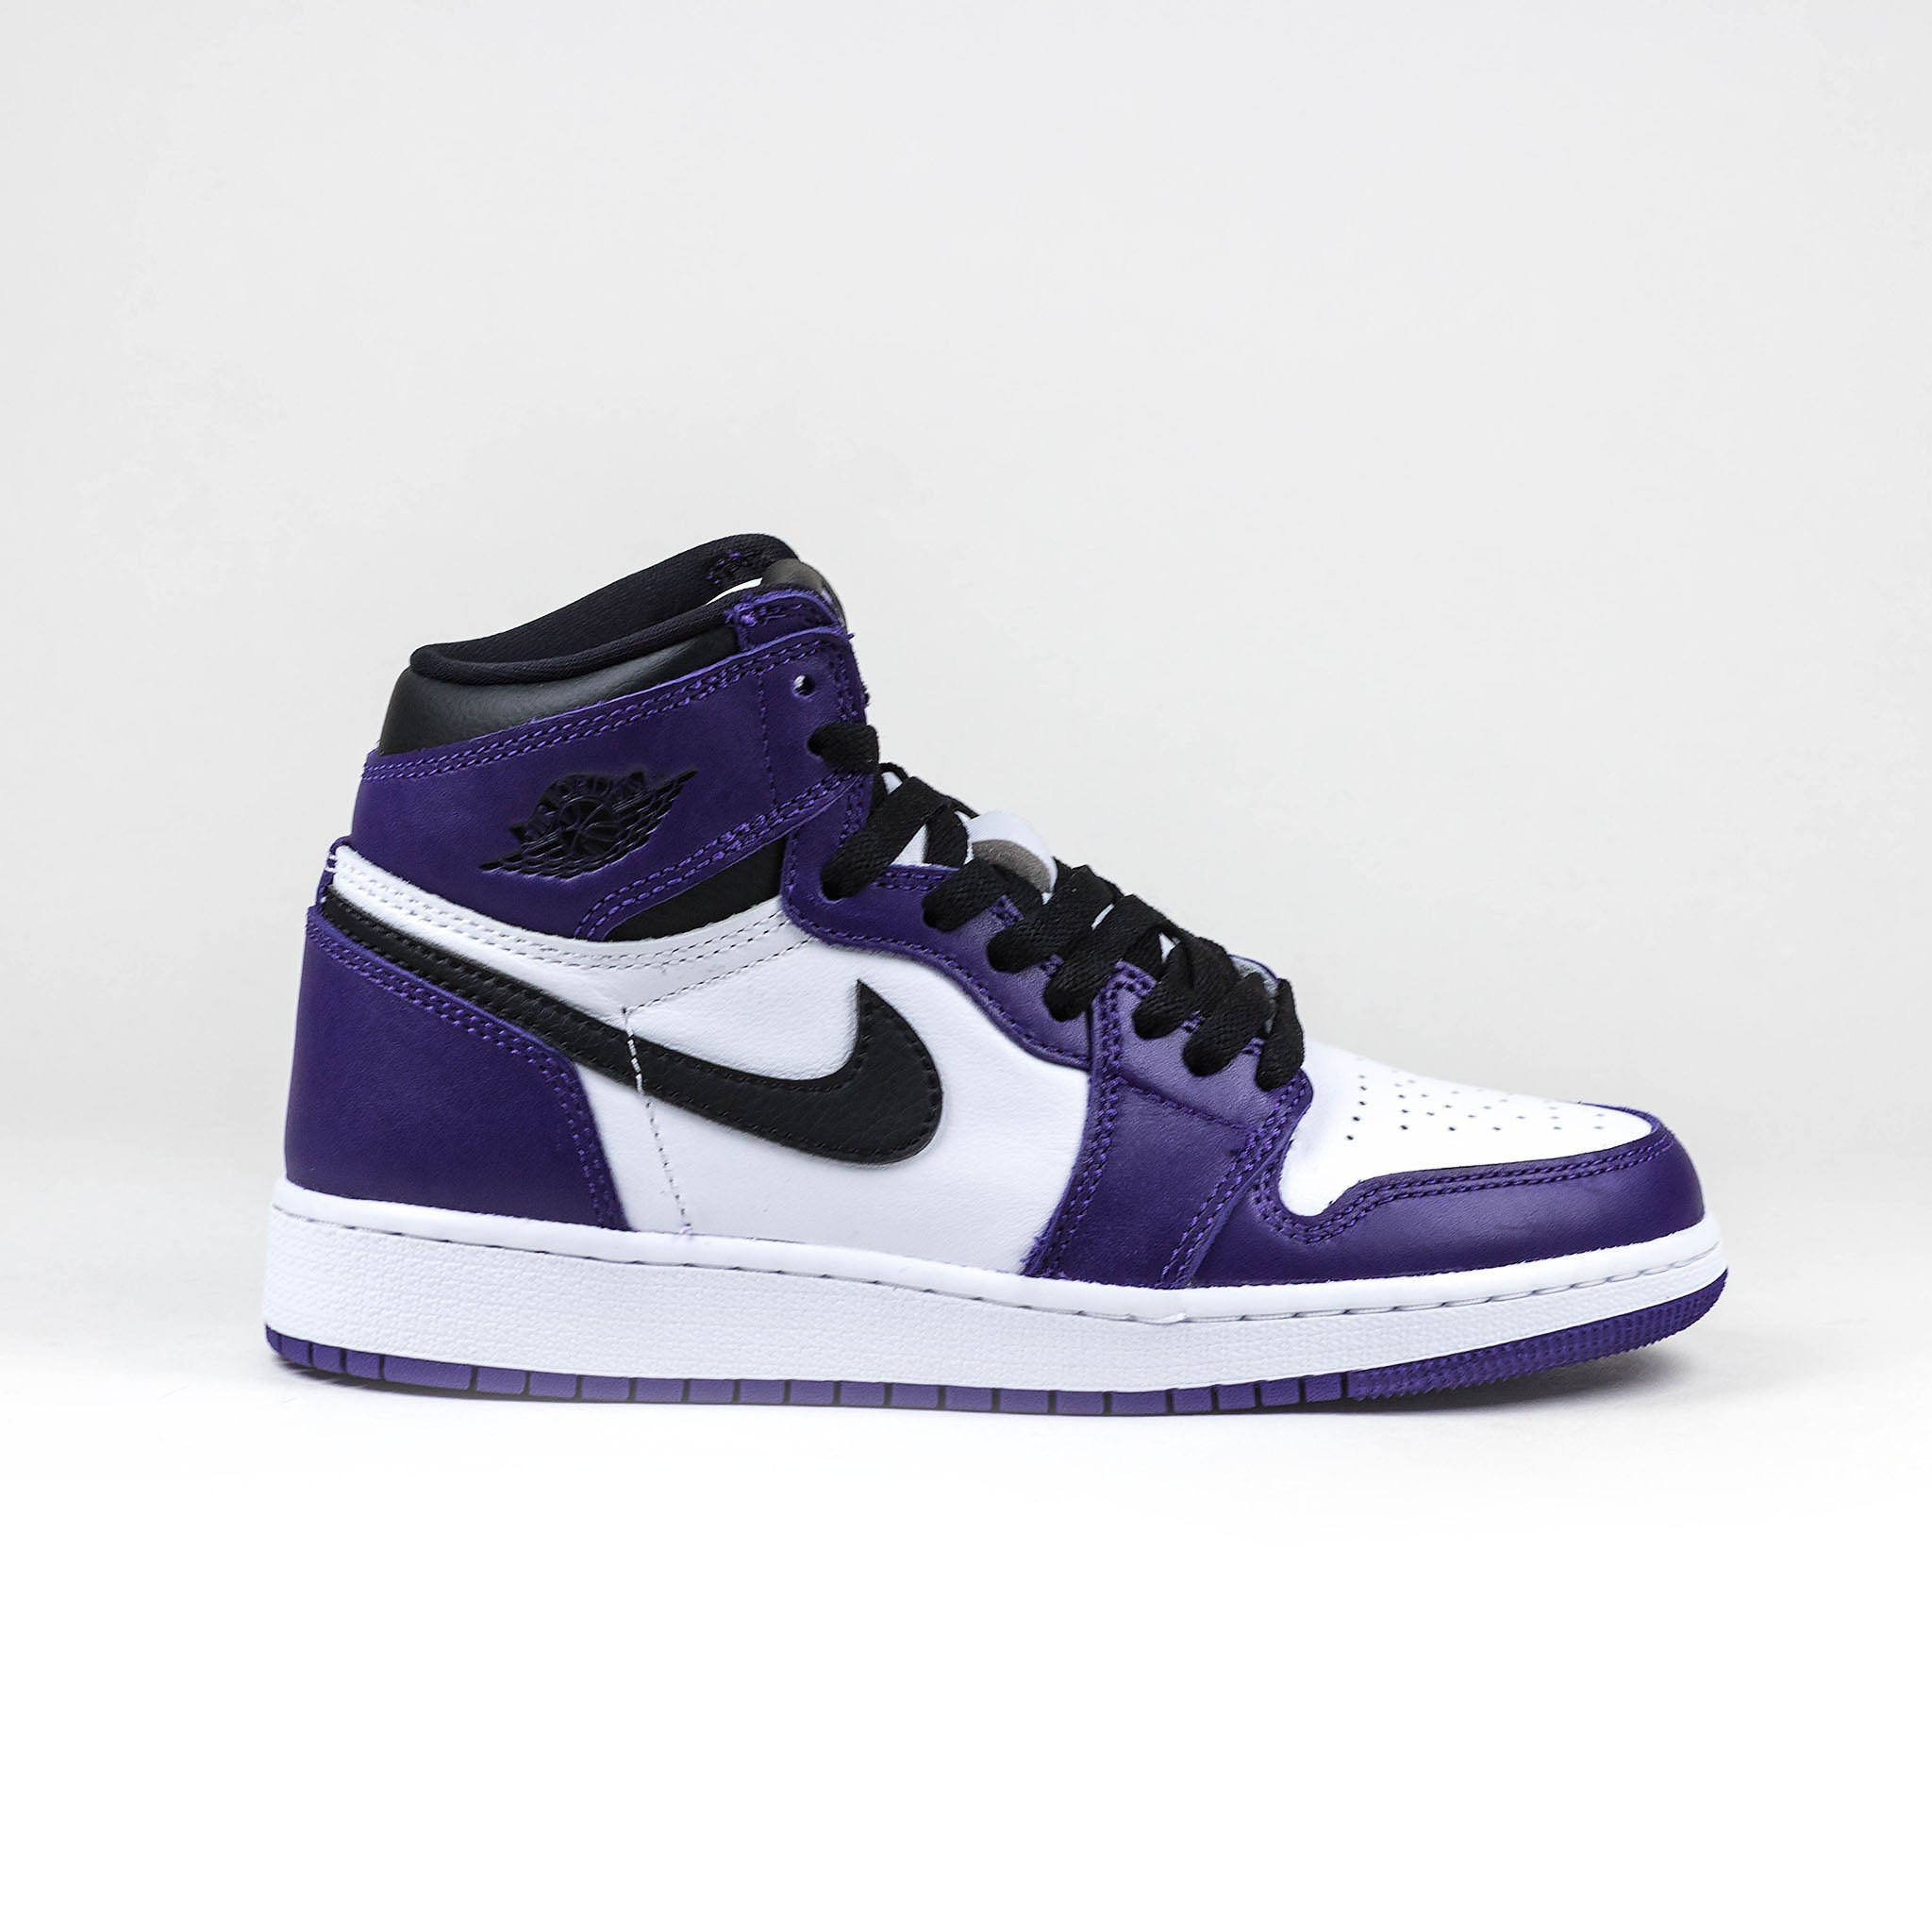 Reconocimiento Iniciar sesión retrasar  Nike Air Jordan 1 Retro High Court Purple White (GS) – Crepslocker